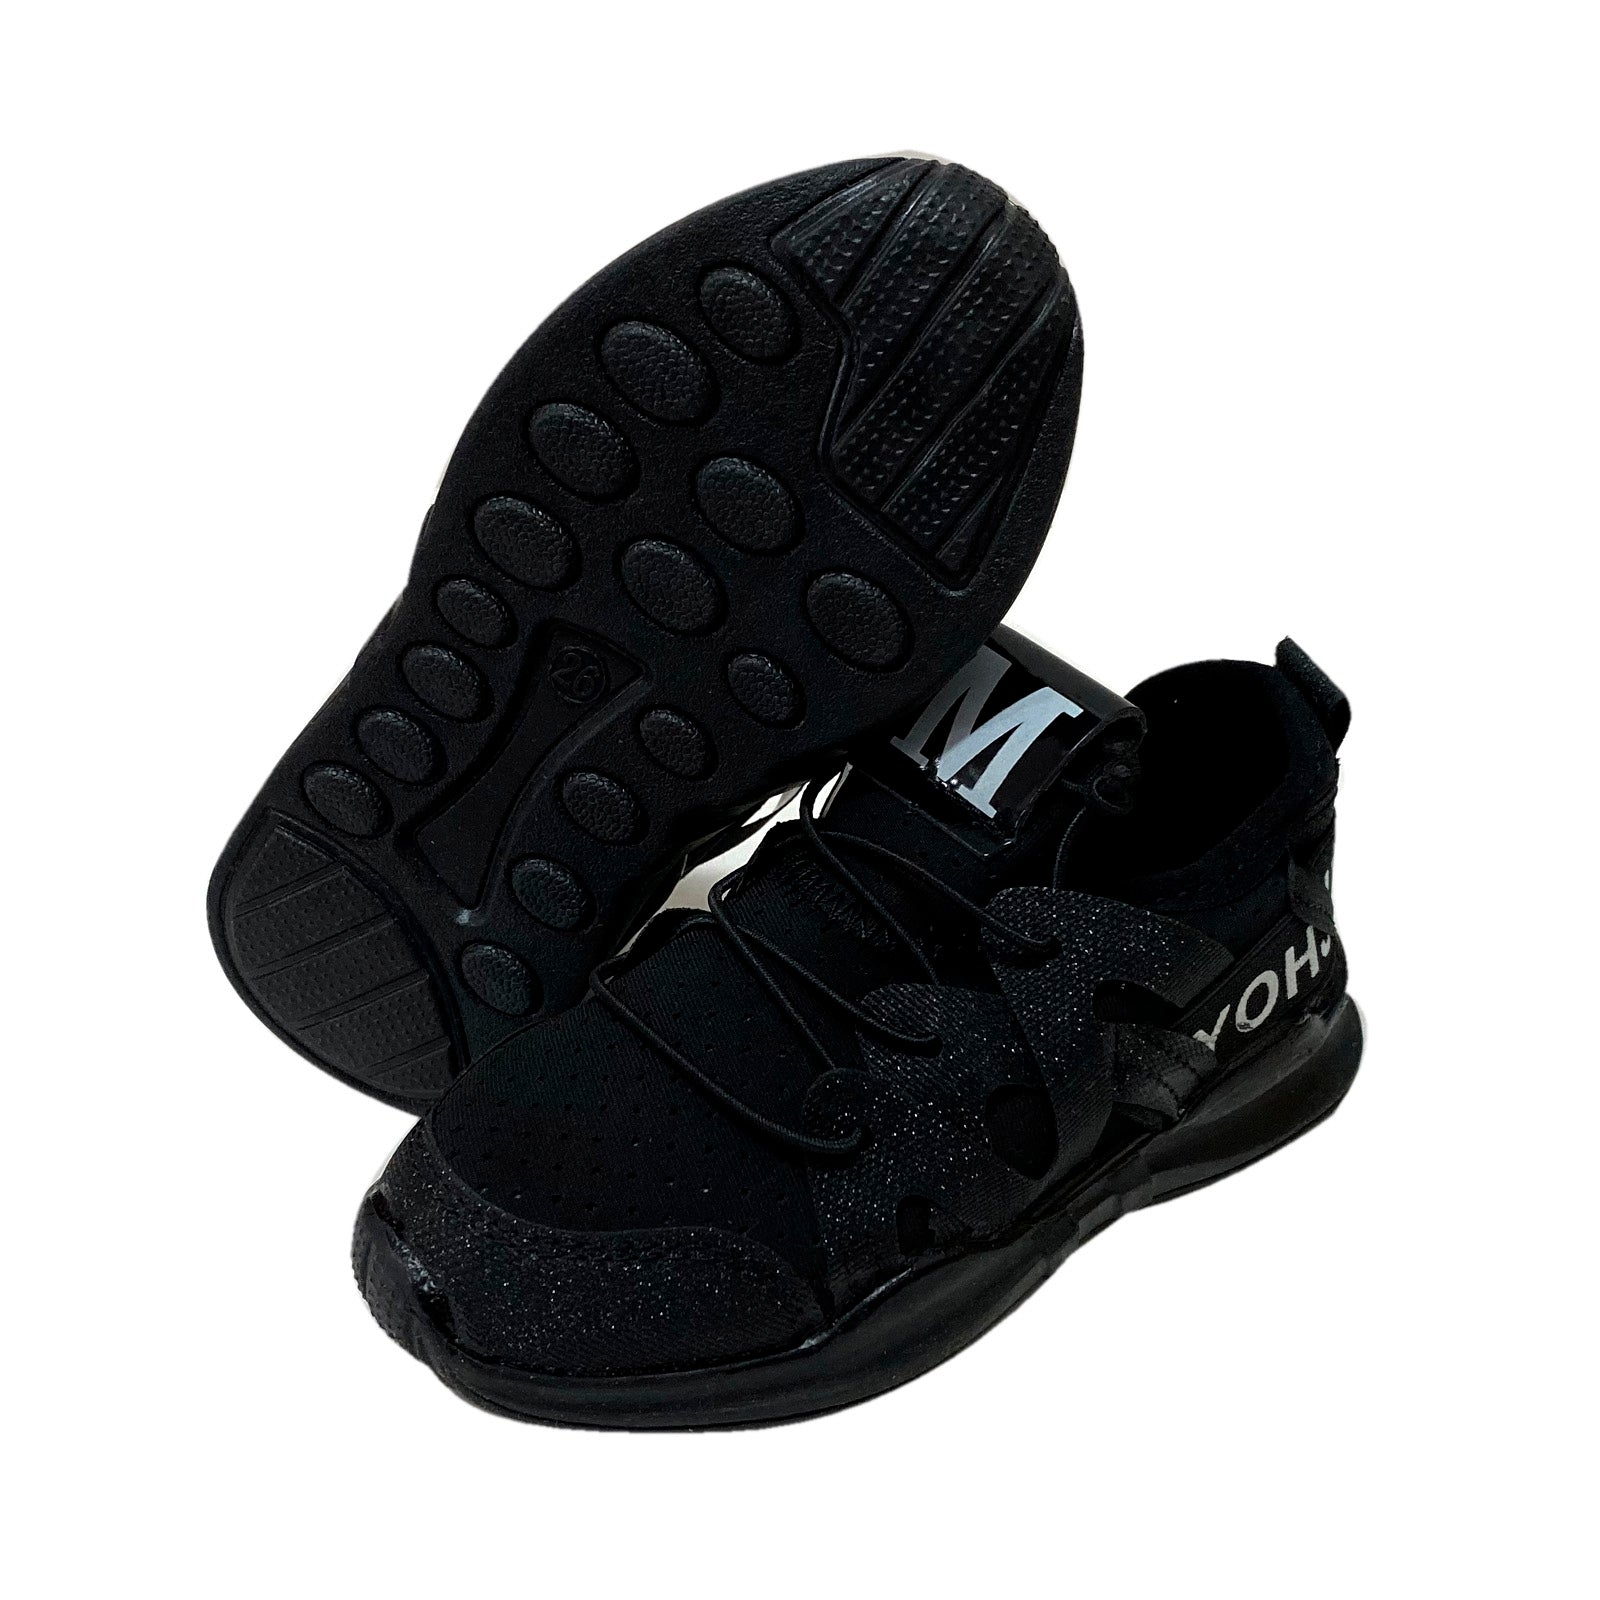 S181 Raf Raf Sports Shoes - Yugito Black New!